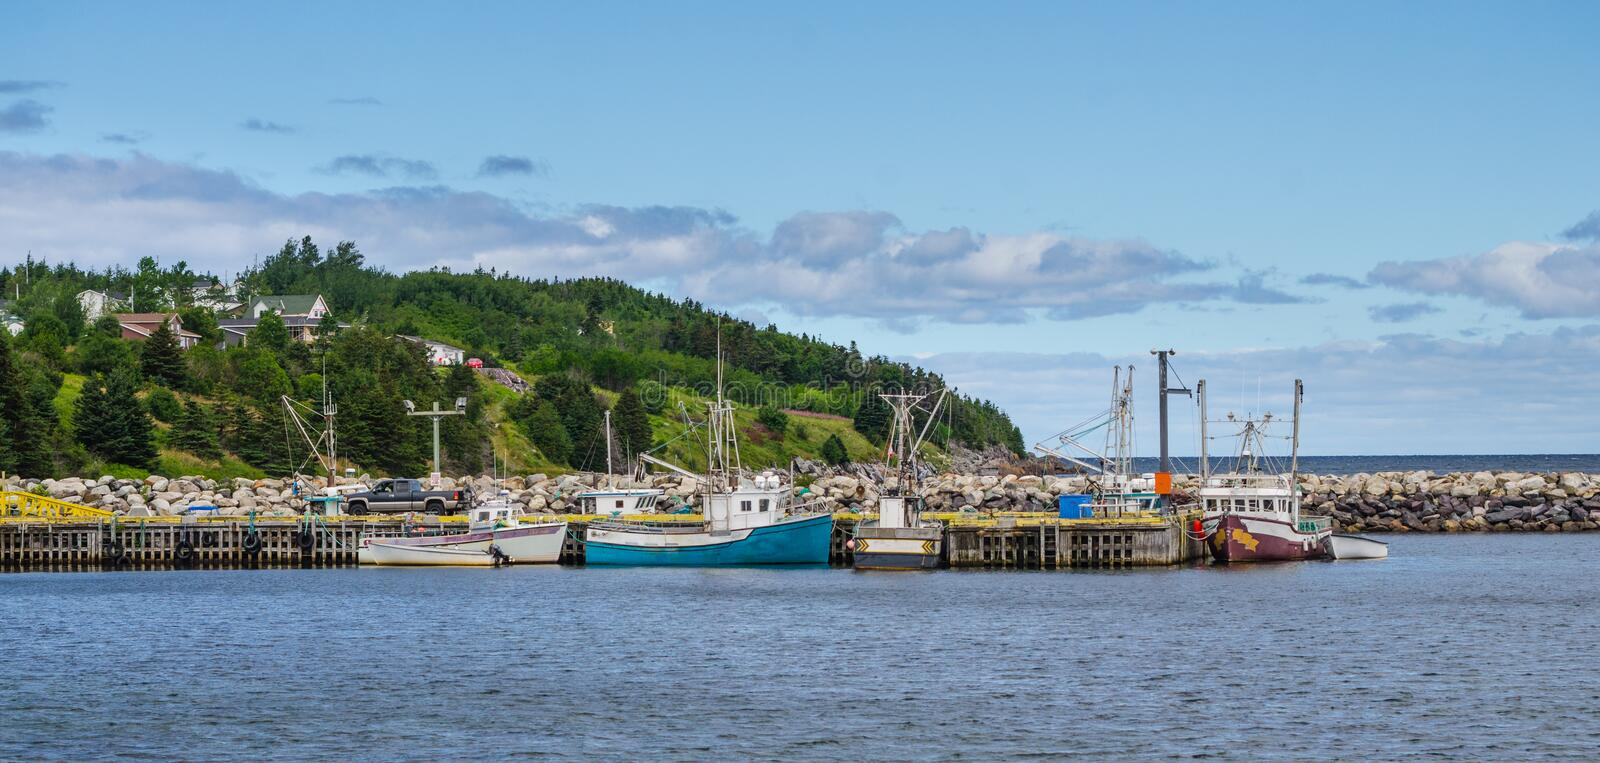 Postcards from Newfoundland. Newfoundland fishing villages see boats at rest for the day on calm coastal water. Bonavista, Newfoundland fishing villages. Boats stock photos